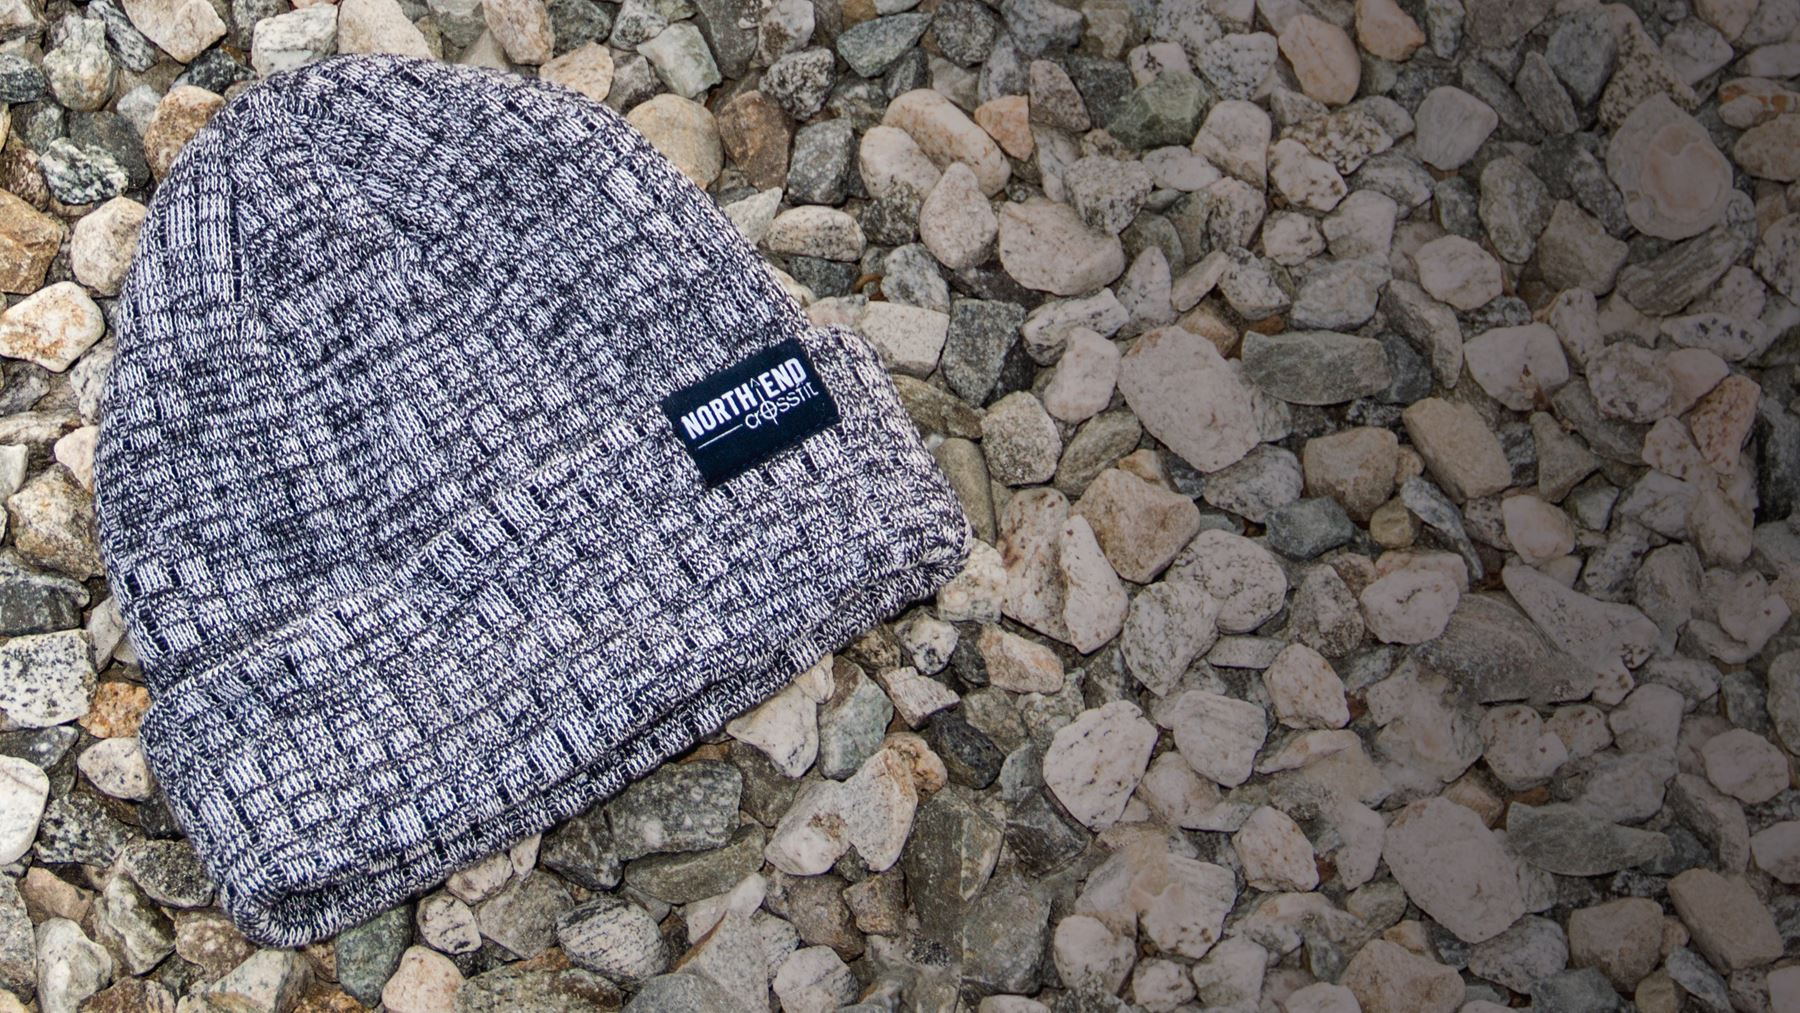 Belafonte knit hat laying on a bed of small stones